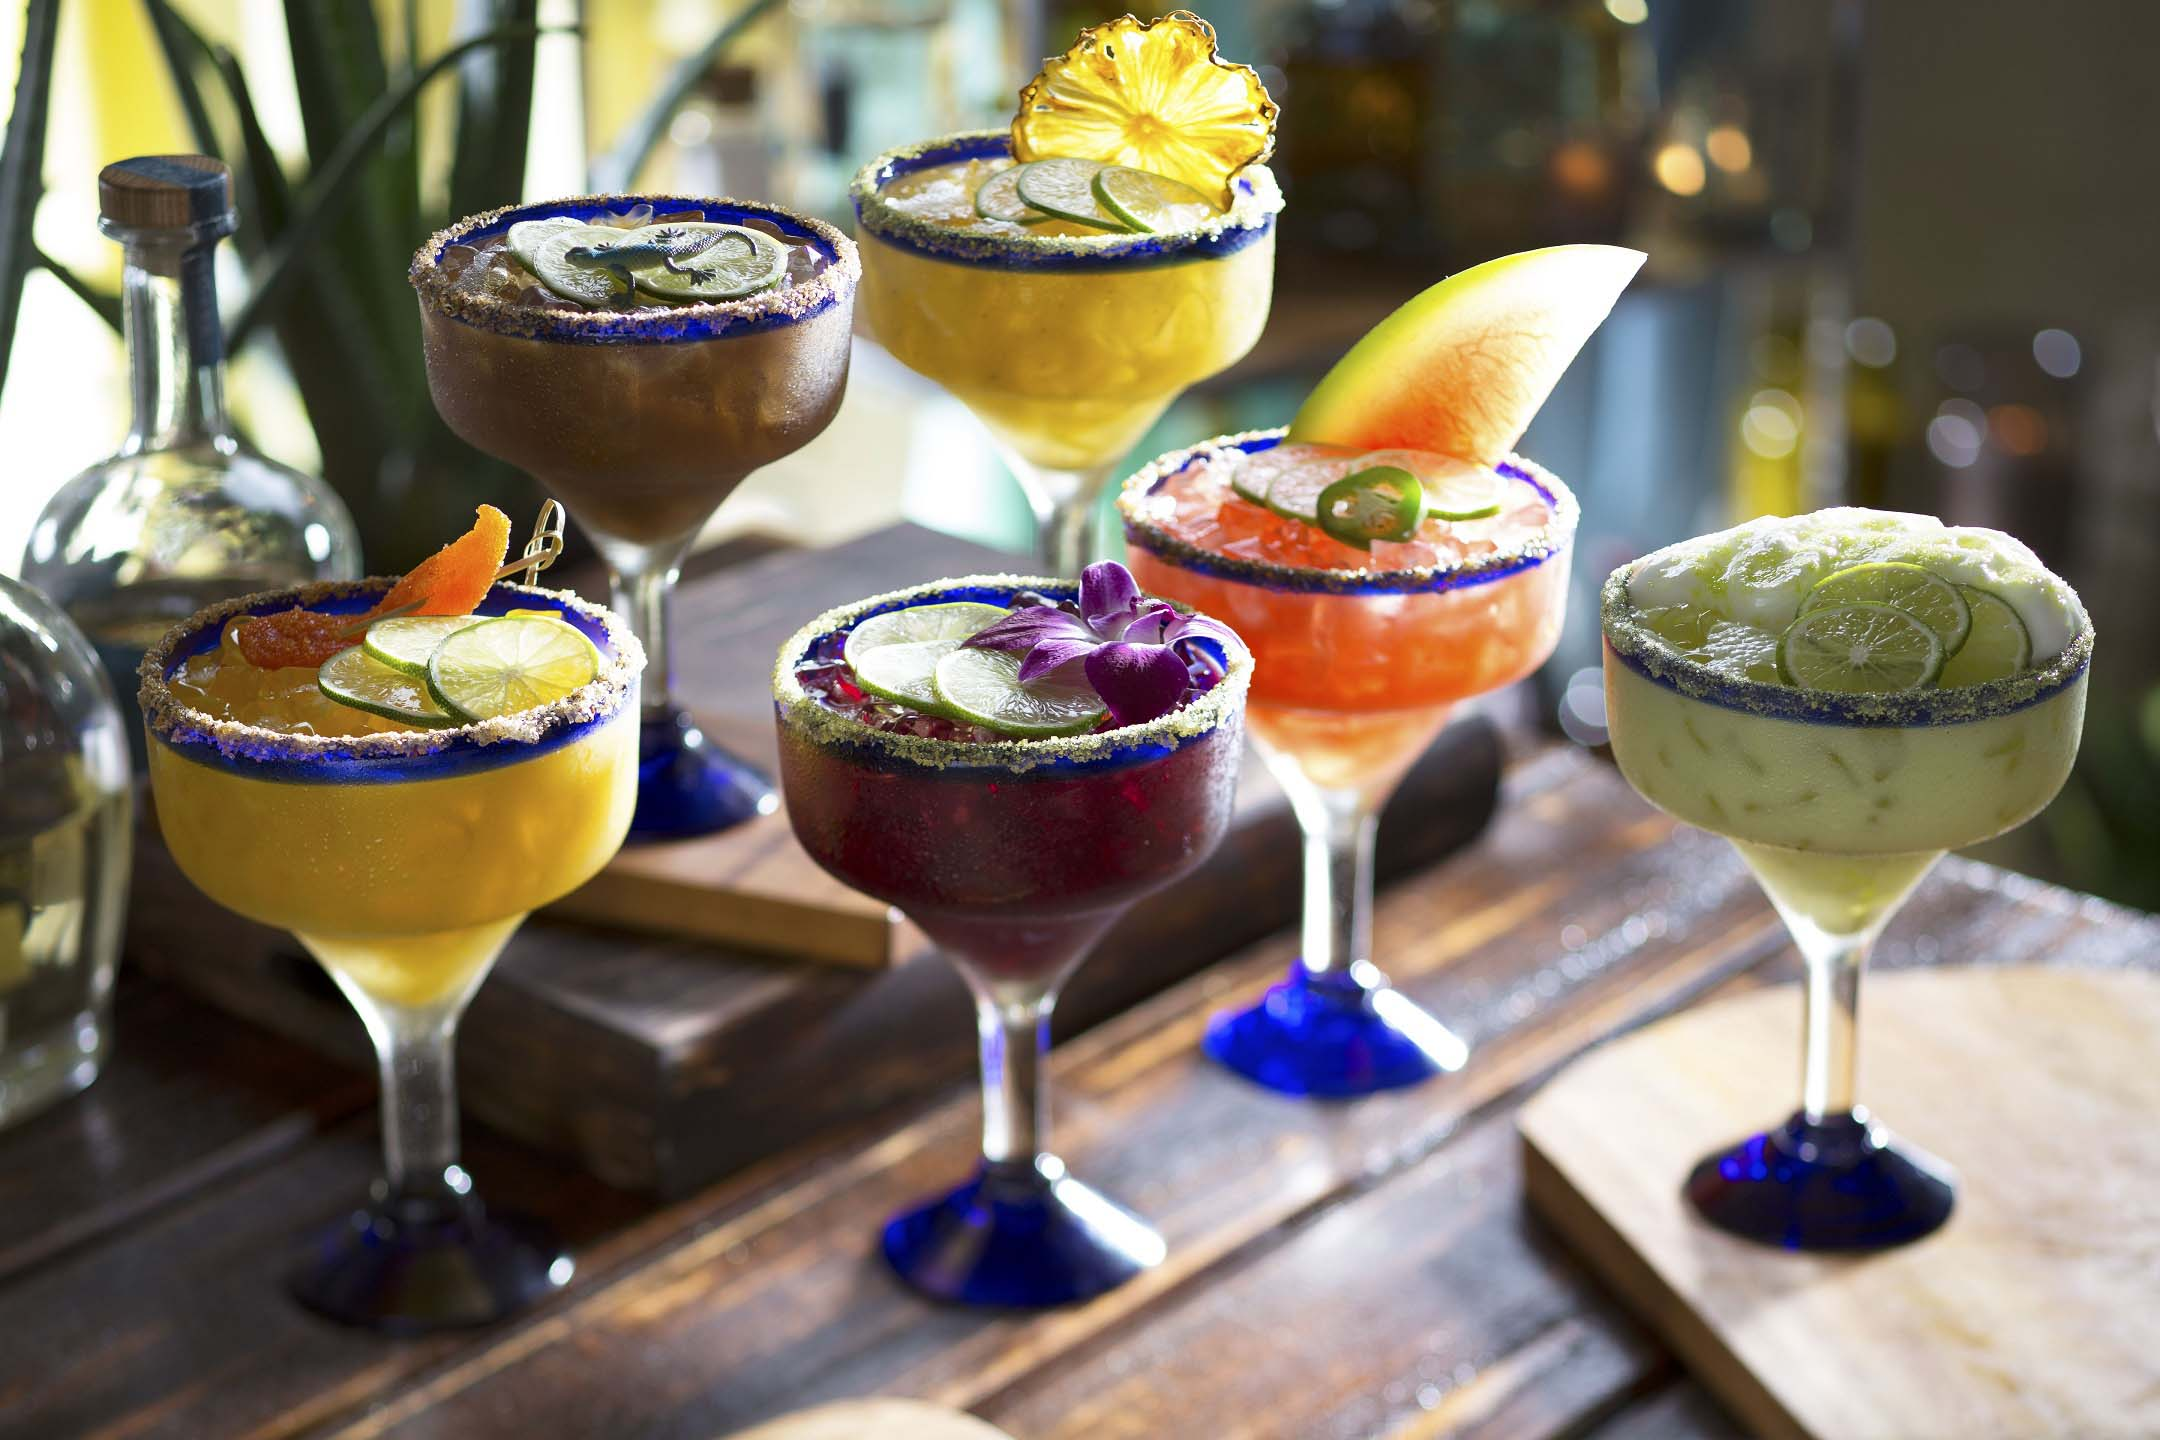 Bahama Breeze Serves Up $2.22 Classic Margaritas